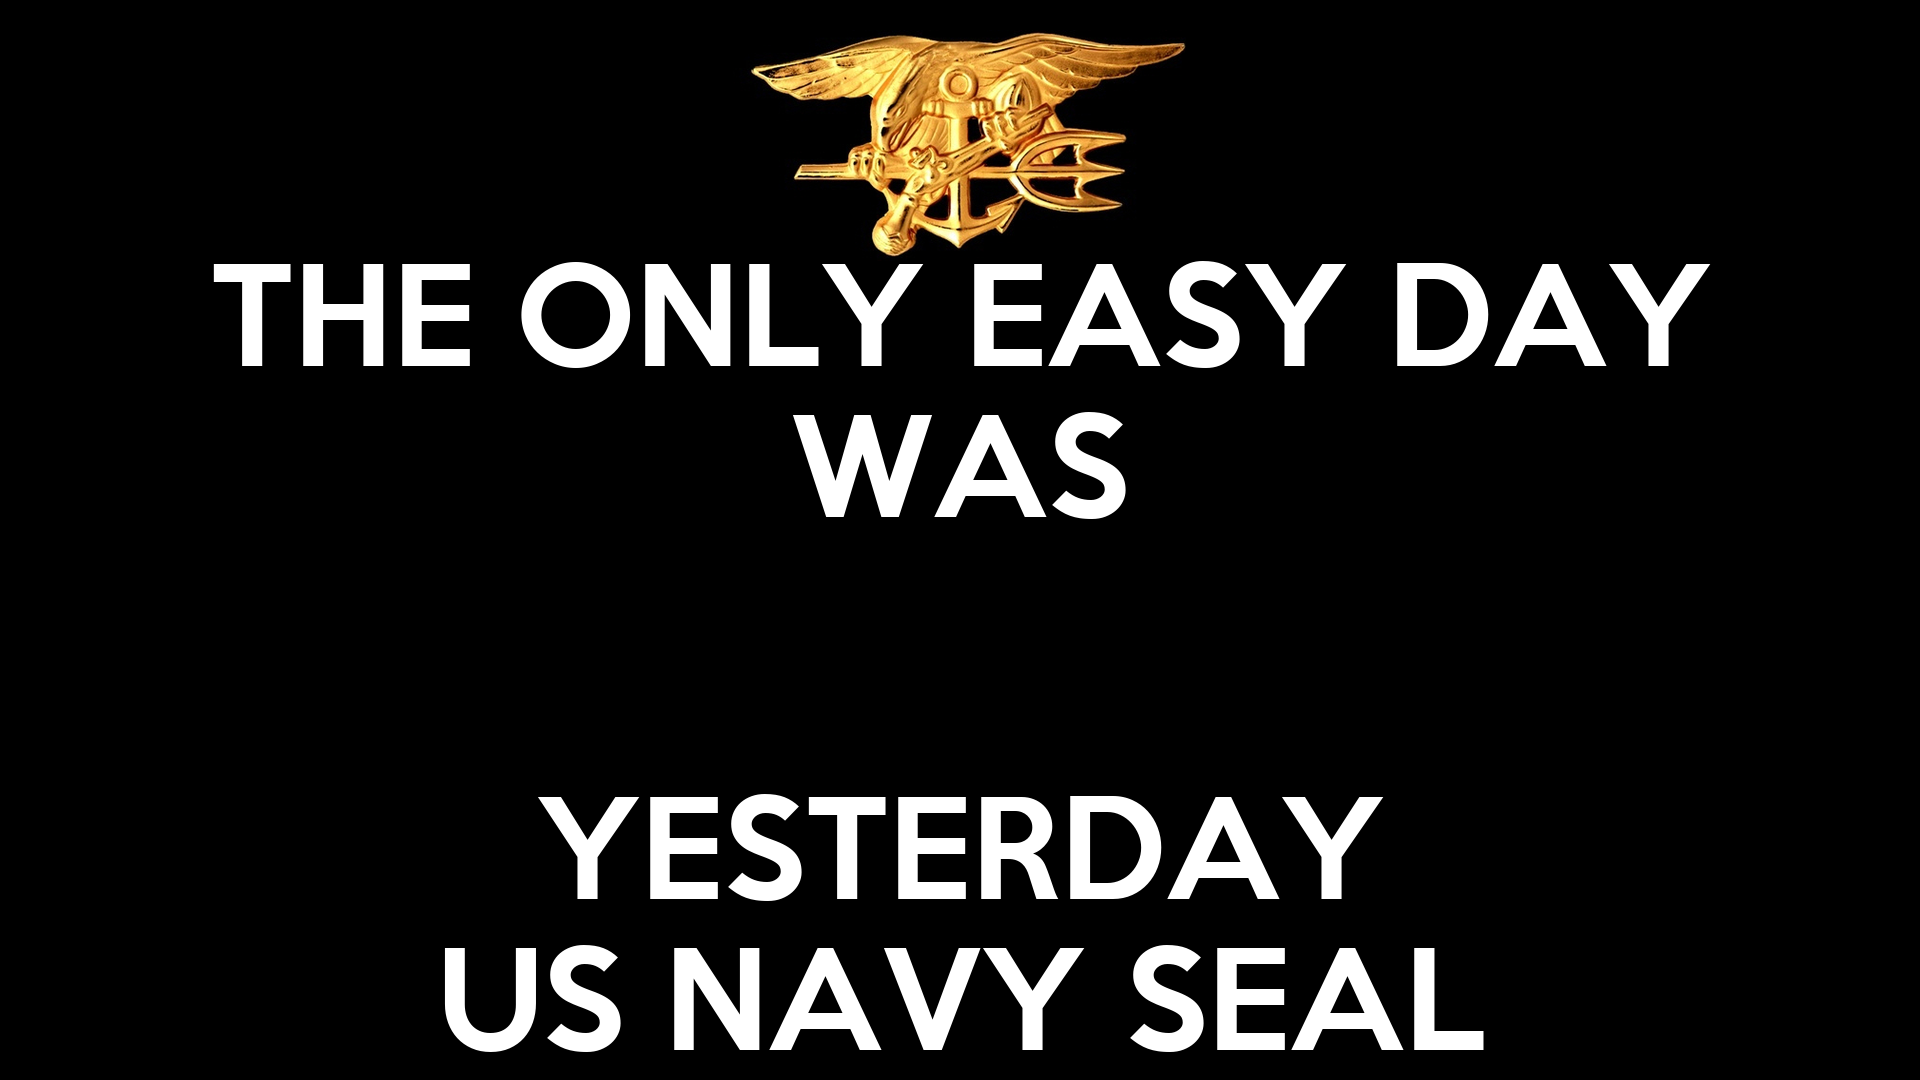 THE ONLY EASY DAY WAS YESTERDAY US NAVY SEAL Poster ...